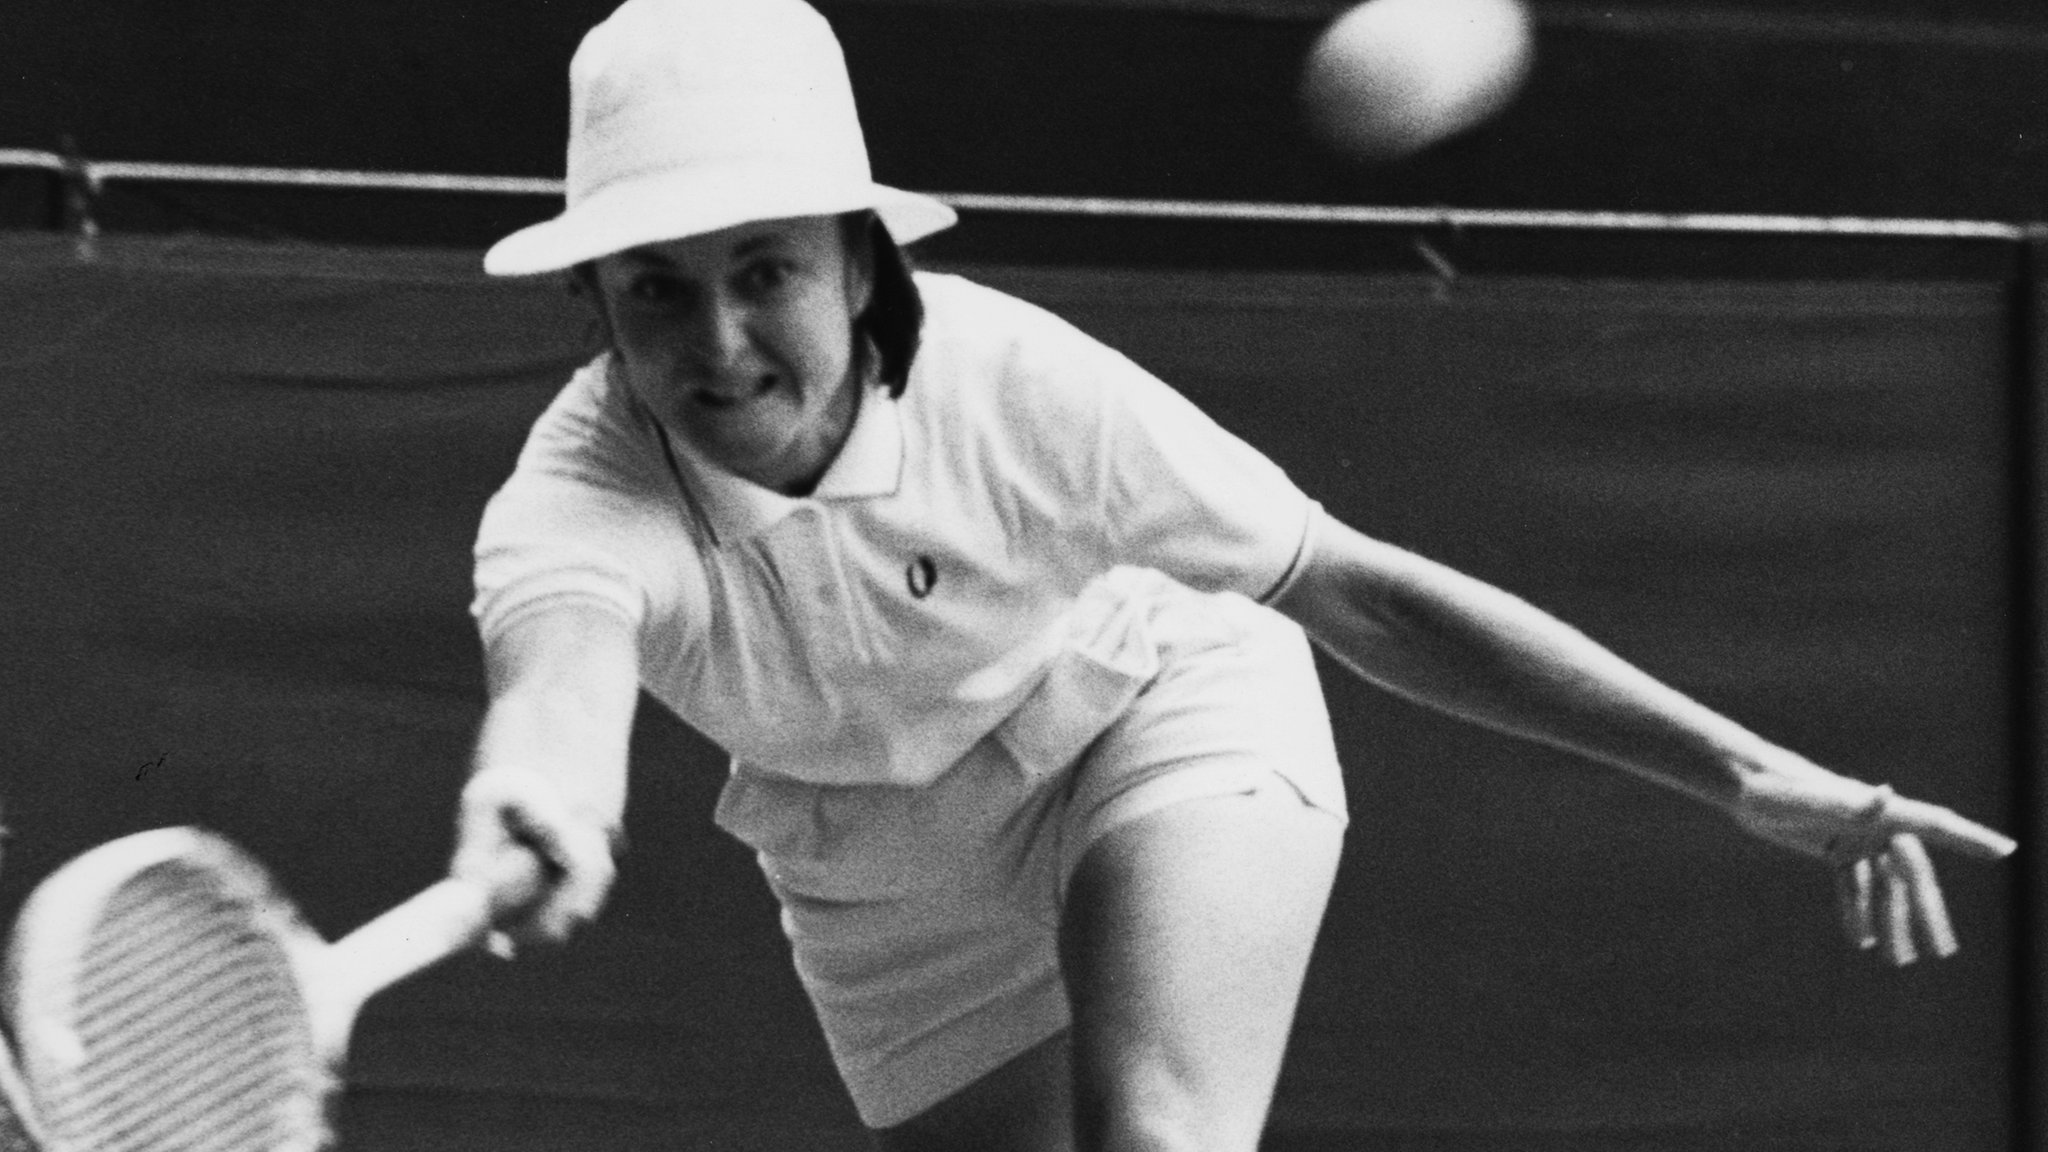 French Open 2018: First open winner Nancy Richey on prize money & Paris riots 50 years ago